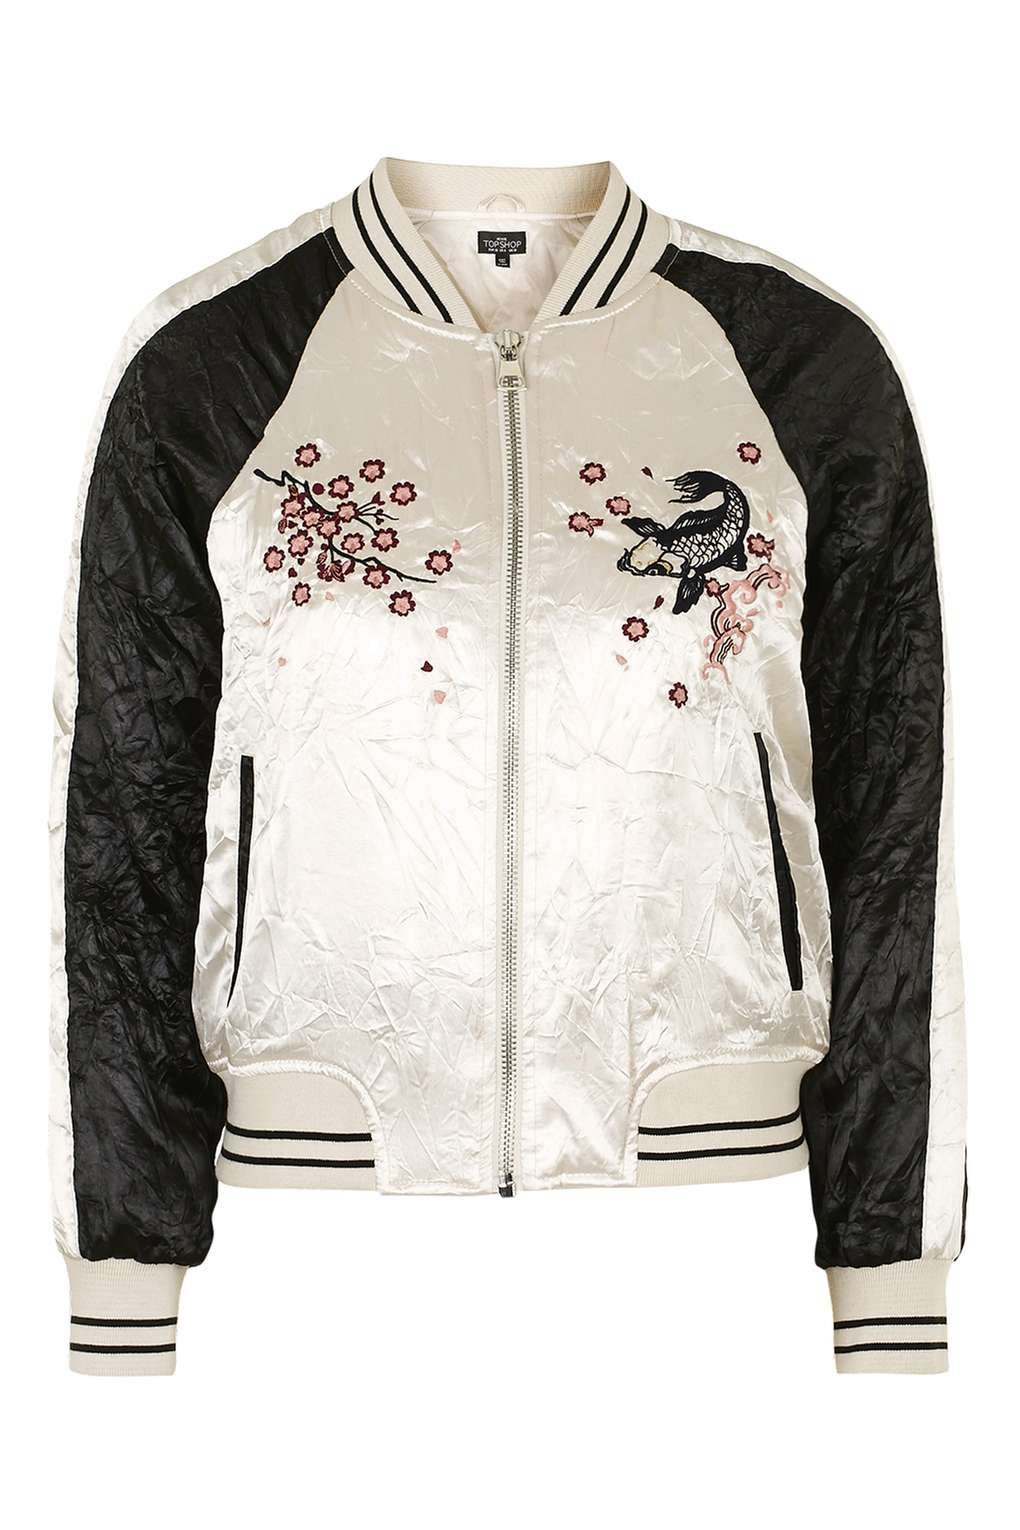 84901ff50 PETITE Embroidered Bomber Jacket in 2019 | All tomorrow's parties ...